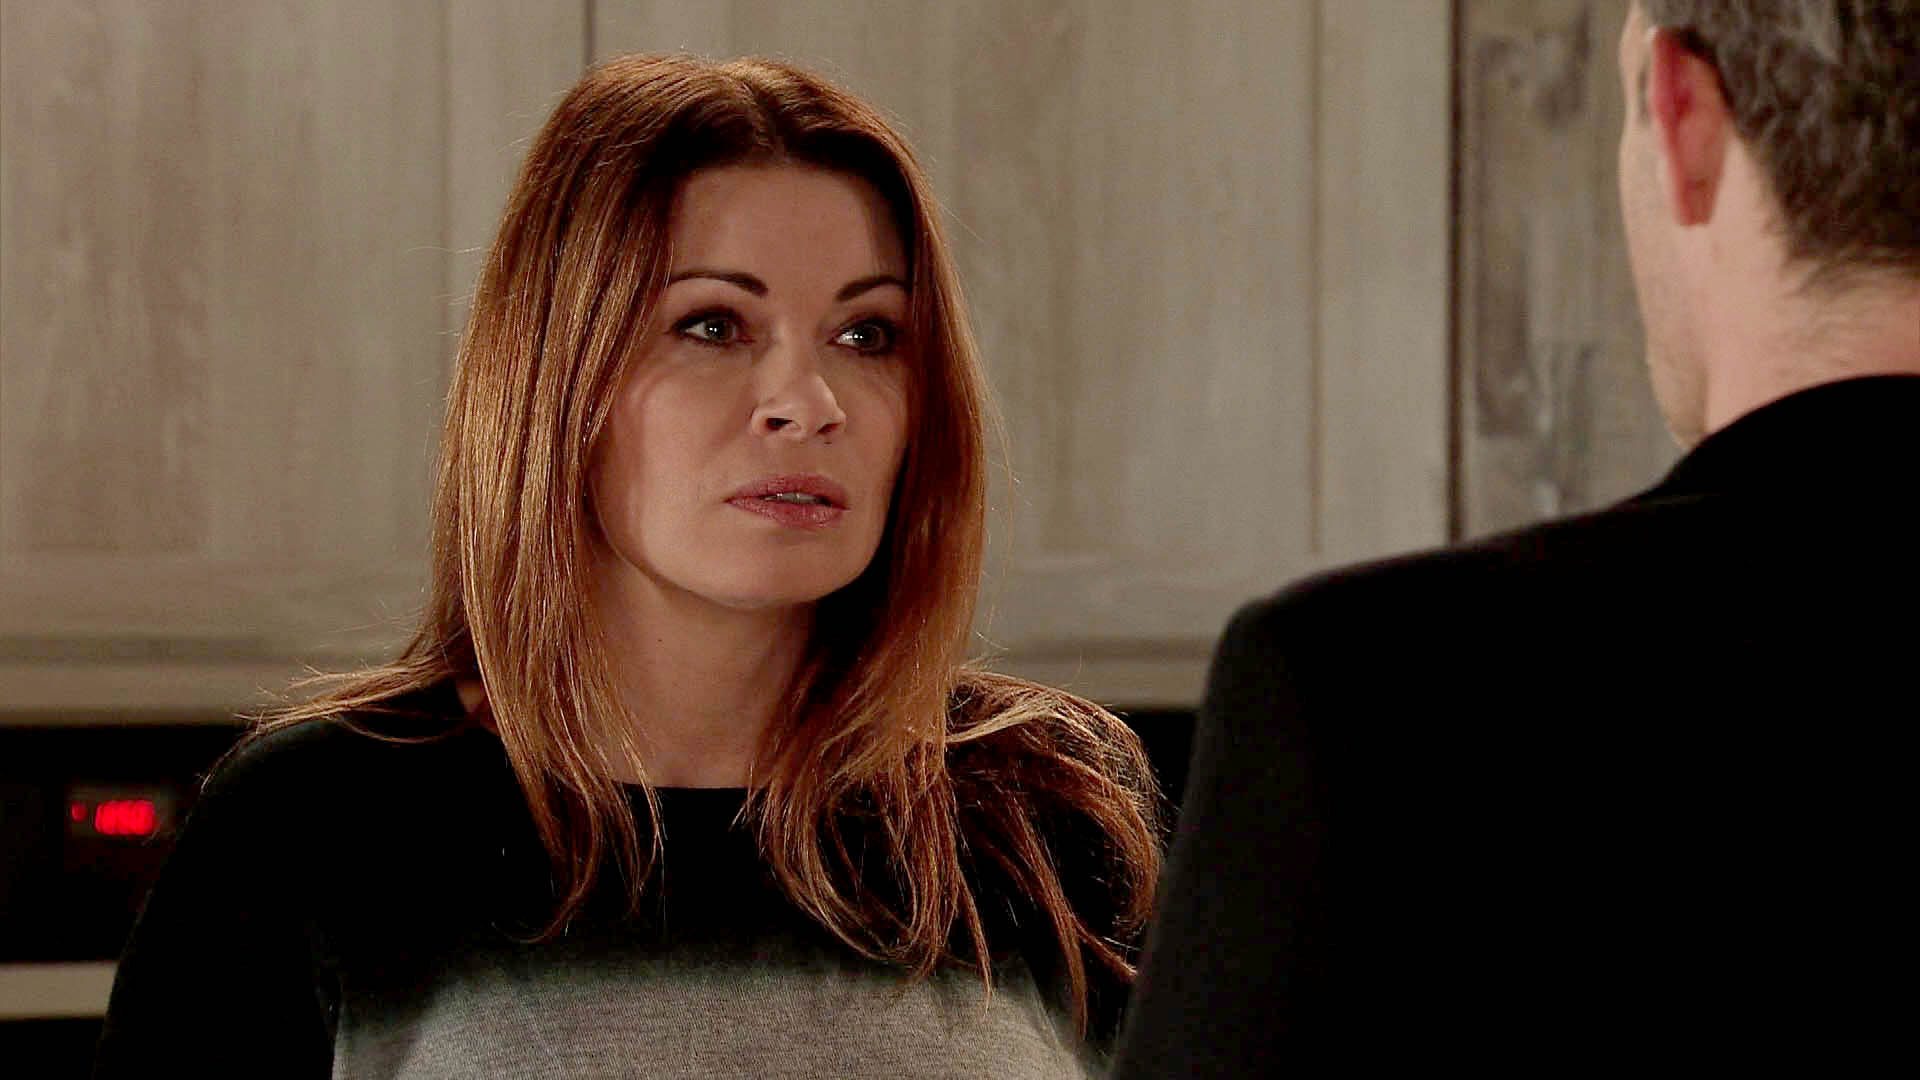 FROM ITV STRICT EMBARGO - No Use Before Tuesday 5 January 2016 Coronation Street - Ep 8814 Monday 11 January 2016 - 1st ep Carla Connor [ALISON KING] admits to Michelle she's consumed with guilt and dreading the wedding. Michelle urges her to talk to Nick Tilsley [BEN PRICE]. Carla bites the bullet and tells Nick she can't marry him! Picture contact: david.crook@itv.com on 0161 952 6214 Photographer - Mark Bruce This photograph is (C) ITV Plc and can only be reproduced for editorial purposes directly in connection with the programme or event mentioned above, or ITV plc. Once made available by ITV plc Picture Desk, this photograph can be reproduced once only up until the transmission [TX] date and no reproduction fee will be charged. Any subsequent usage may incur a fee. This photograph must not be manipulated [excluding basic cropping] in a manner which alters the visual appearance of the person photographed deemed detrimental or inappropriate by ITV plc Picture Desk. This photograph must not be syndicated to any other company, publication or website, or permanently archived, without the express written permission of ITV Plc Picture Desk. Full Terms and conditions are available on the website www.itvpictur